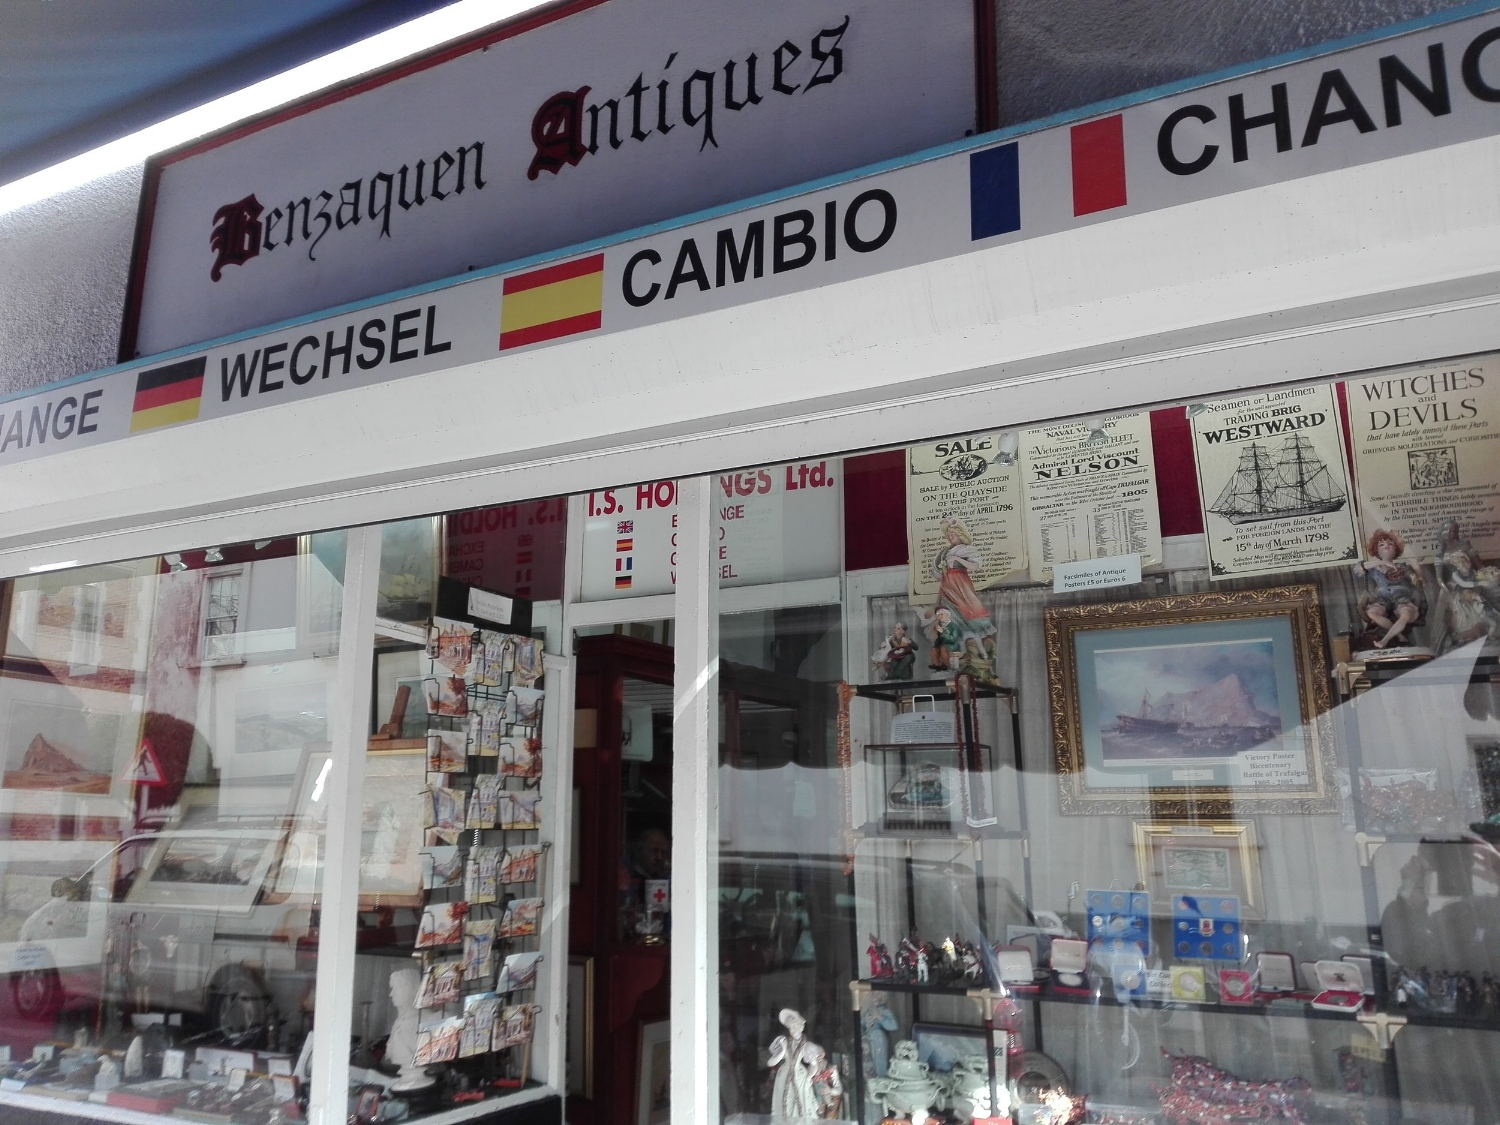 Benzaquen Antiques - A genuine Old Curiosity Shop, trading in rare antiquities for three generations. It's also a burea de change! And this one offers the best rate in town - maybe because it's the furthest to walk to! It's just up from No. 6.Open Mon-Fri 09.00-19.00